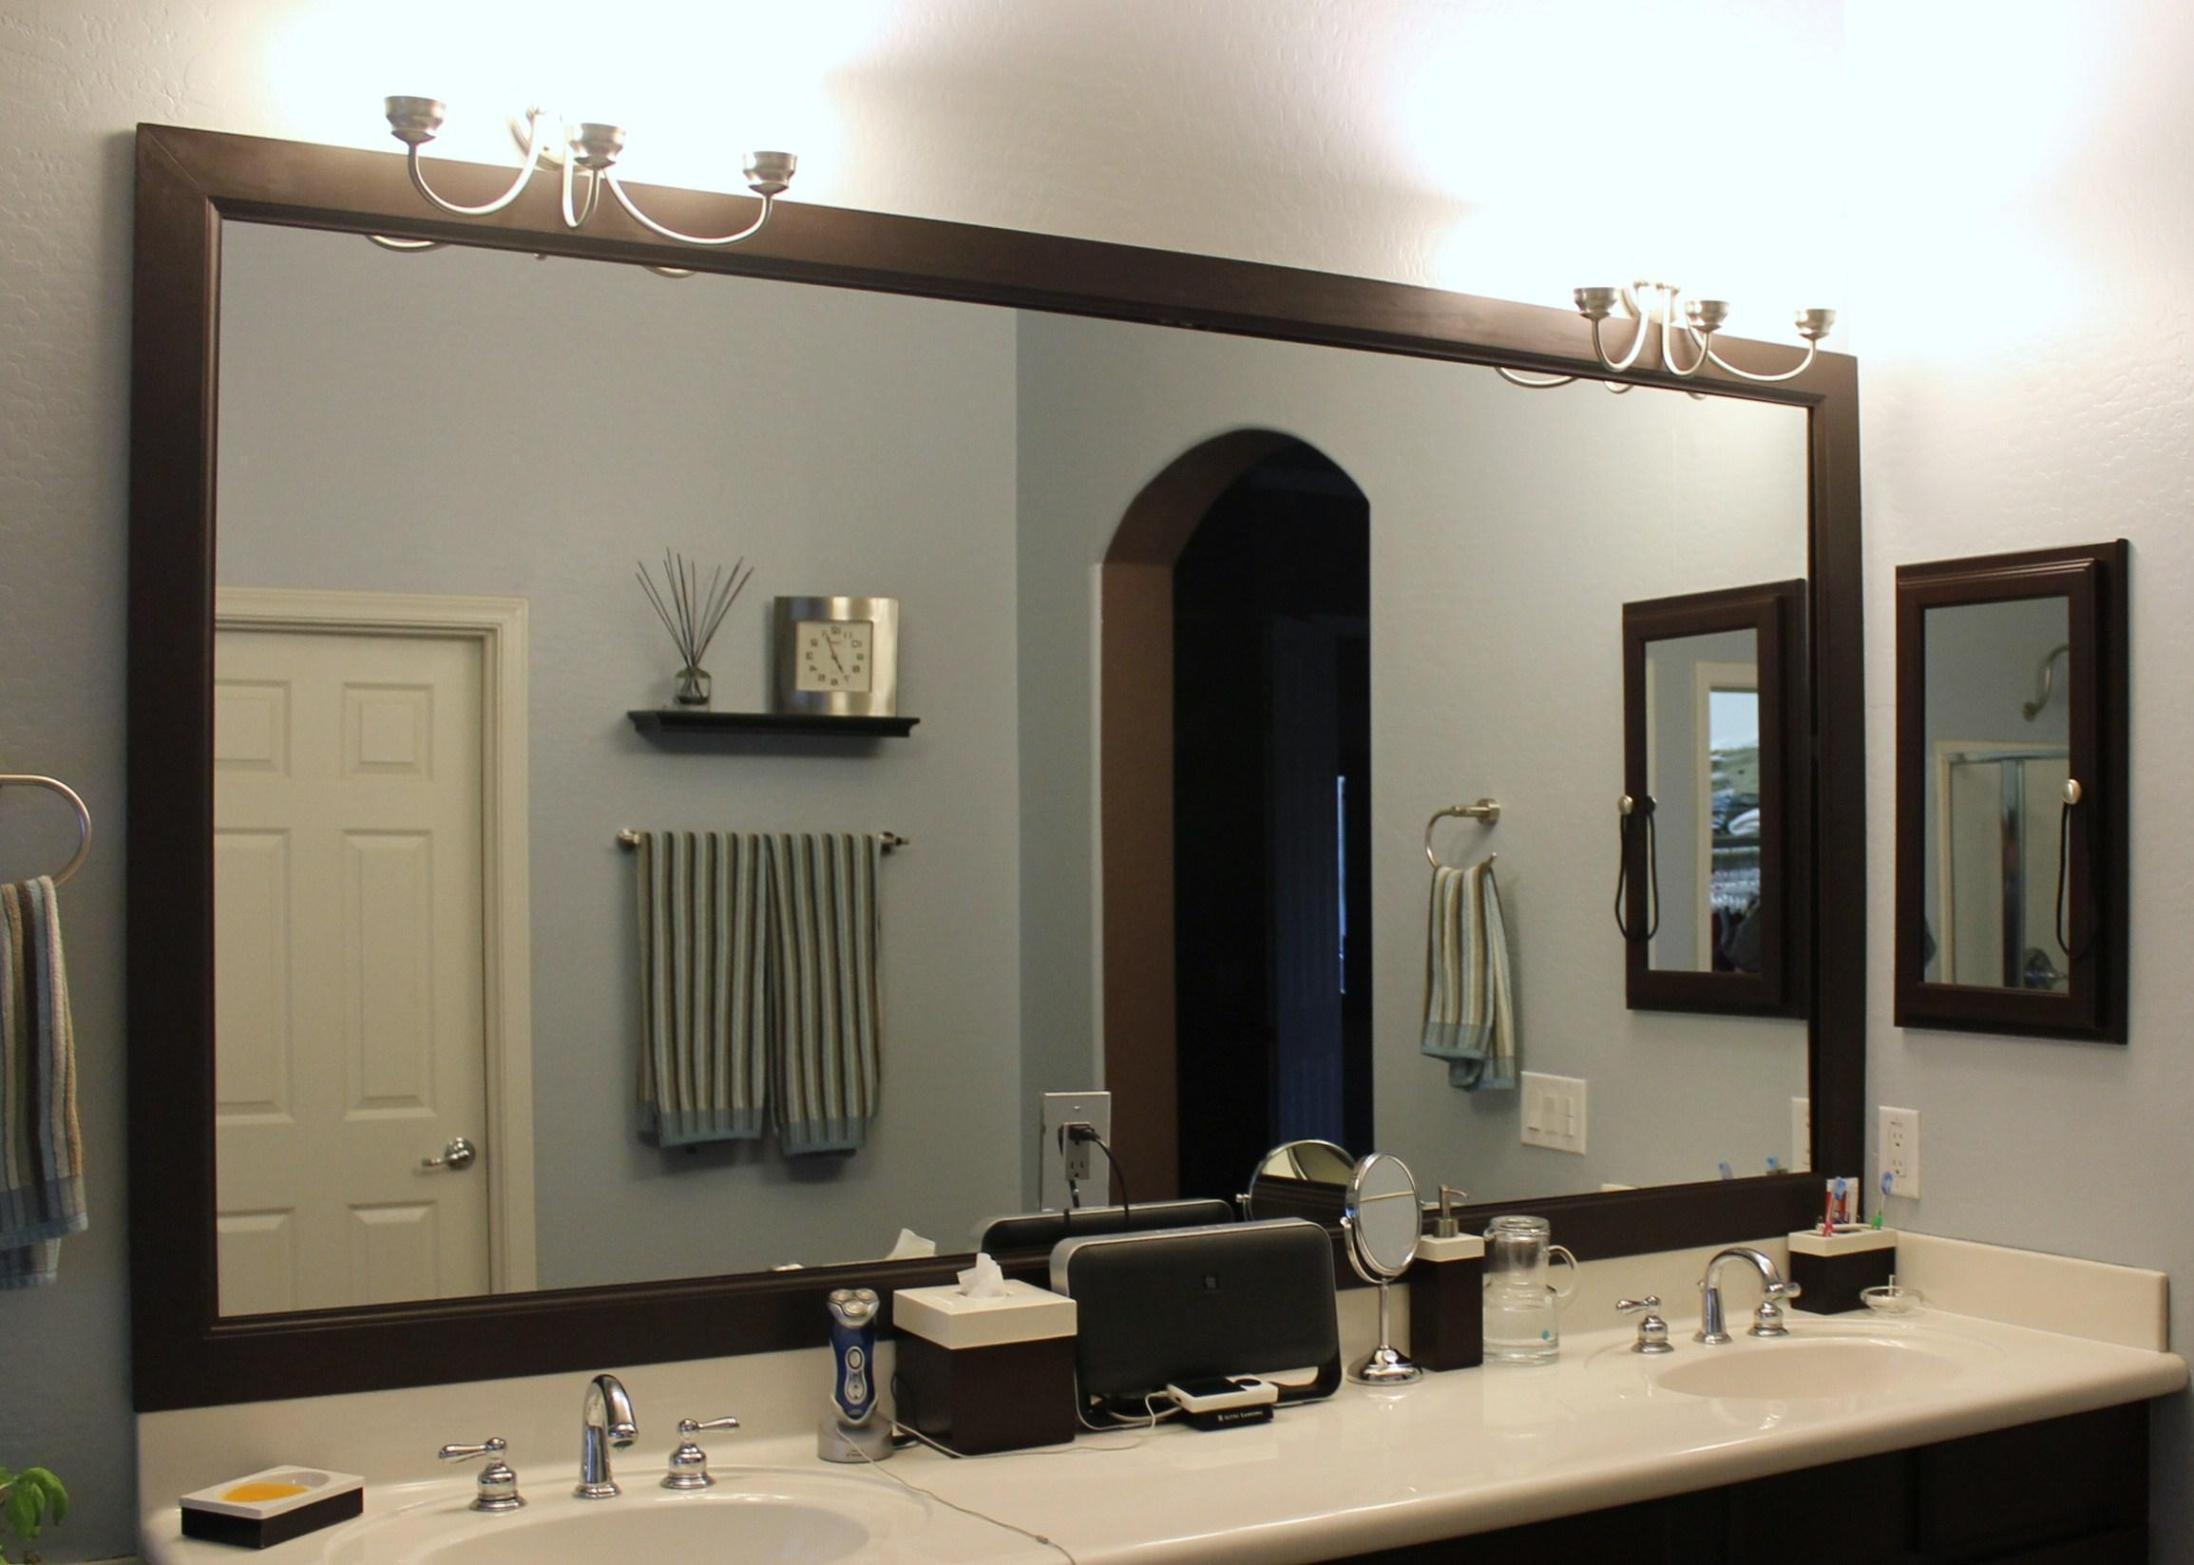 Framed Mirrors Bathroom Vanity Mirrors Large Mirror Decorative Regarding Decorative Mirrors For Bathroom Vanity (Photo 18 of 20)